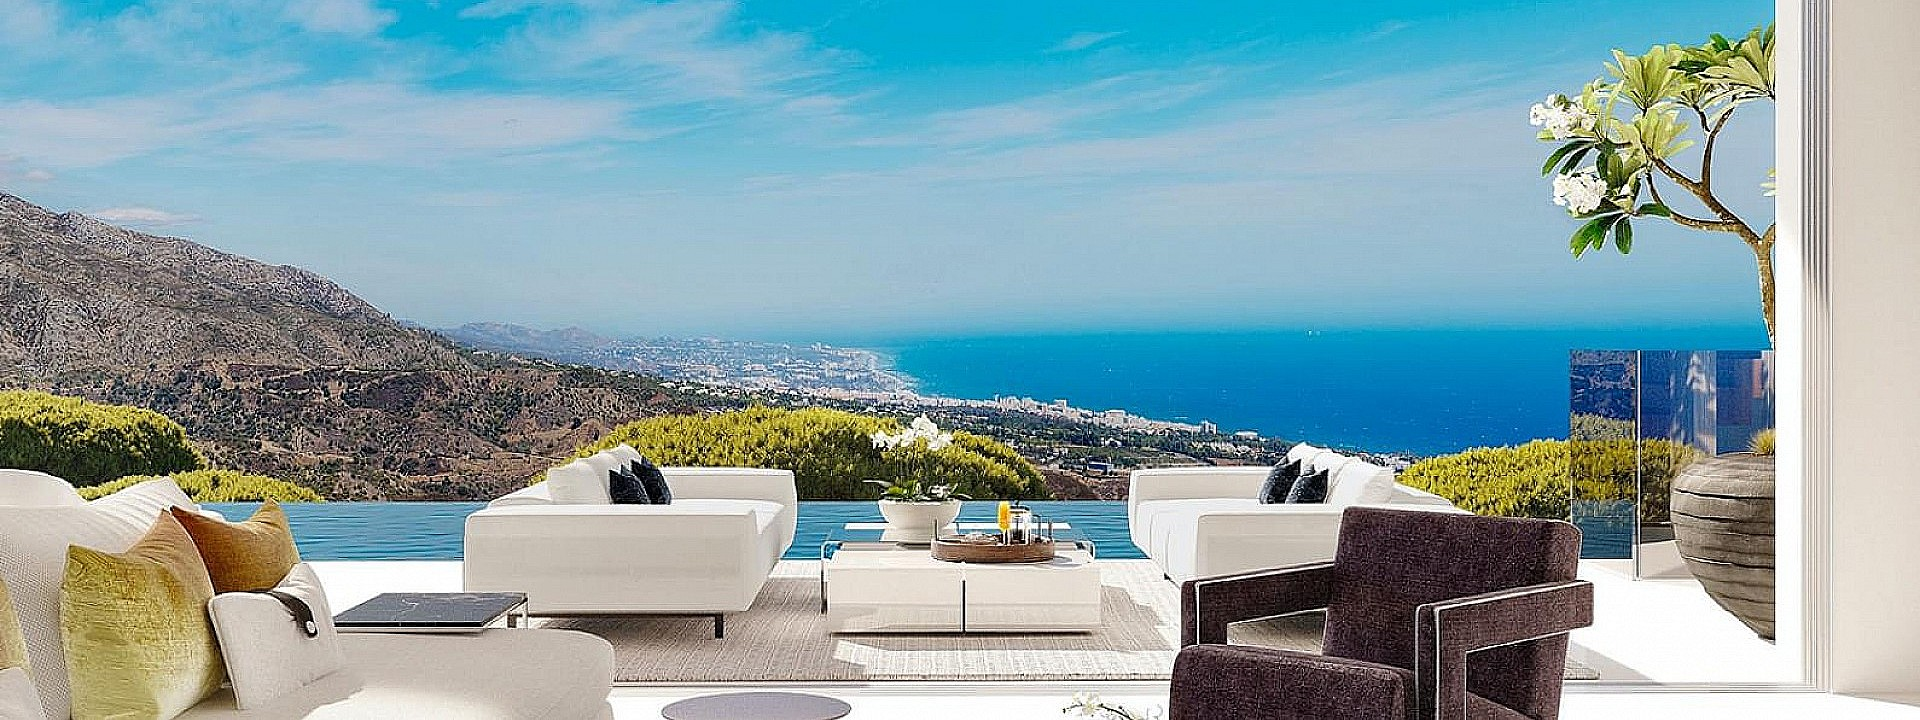 Luxury Costa Blanca